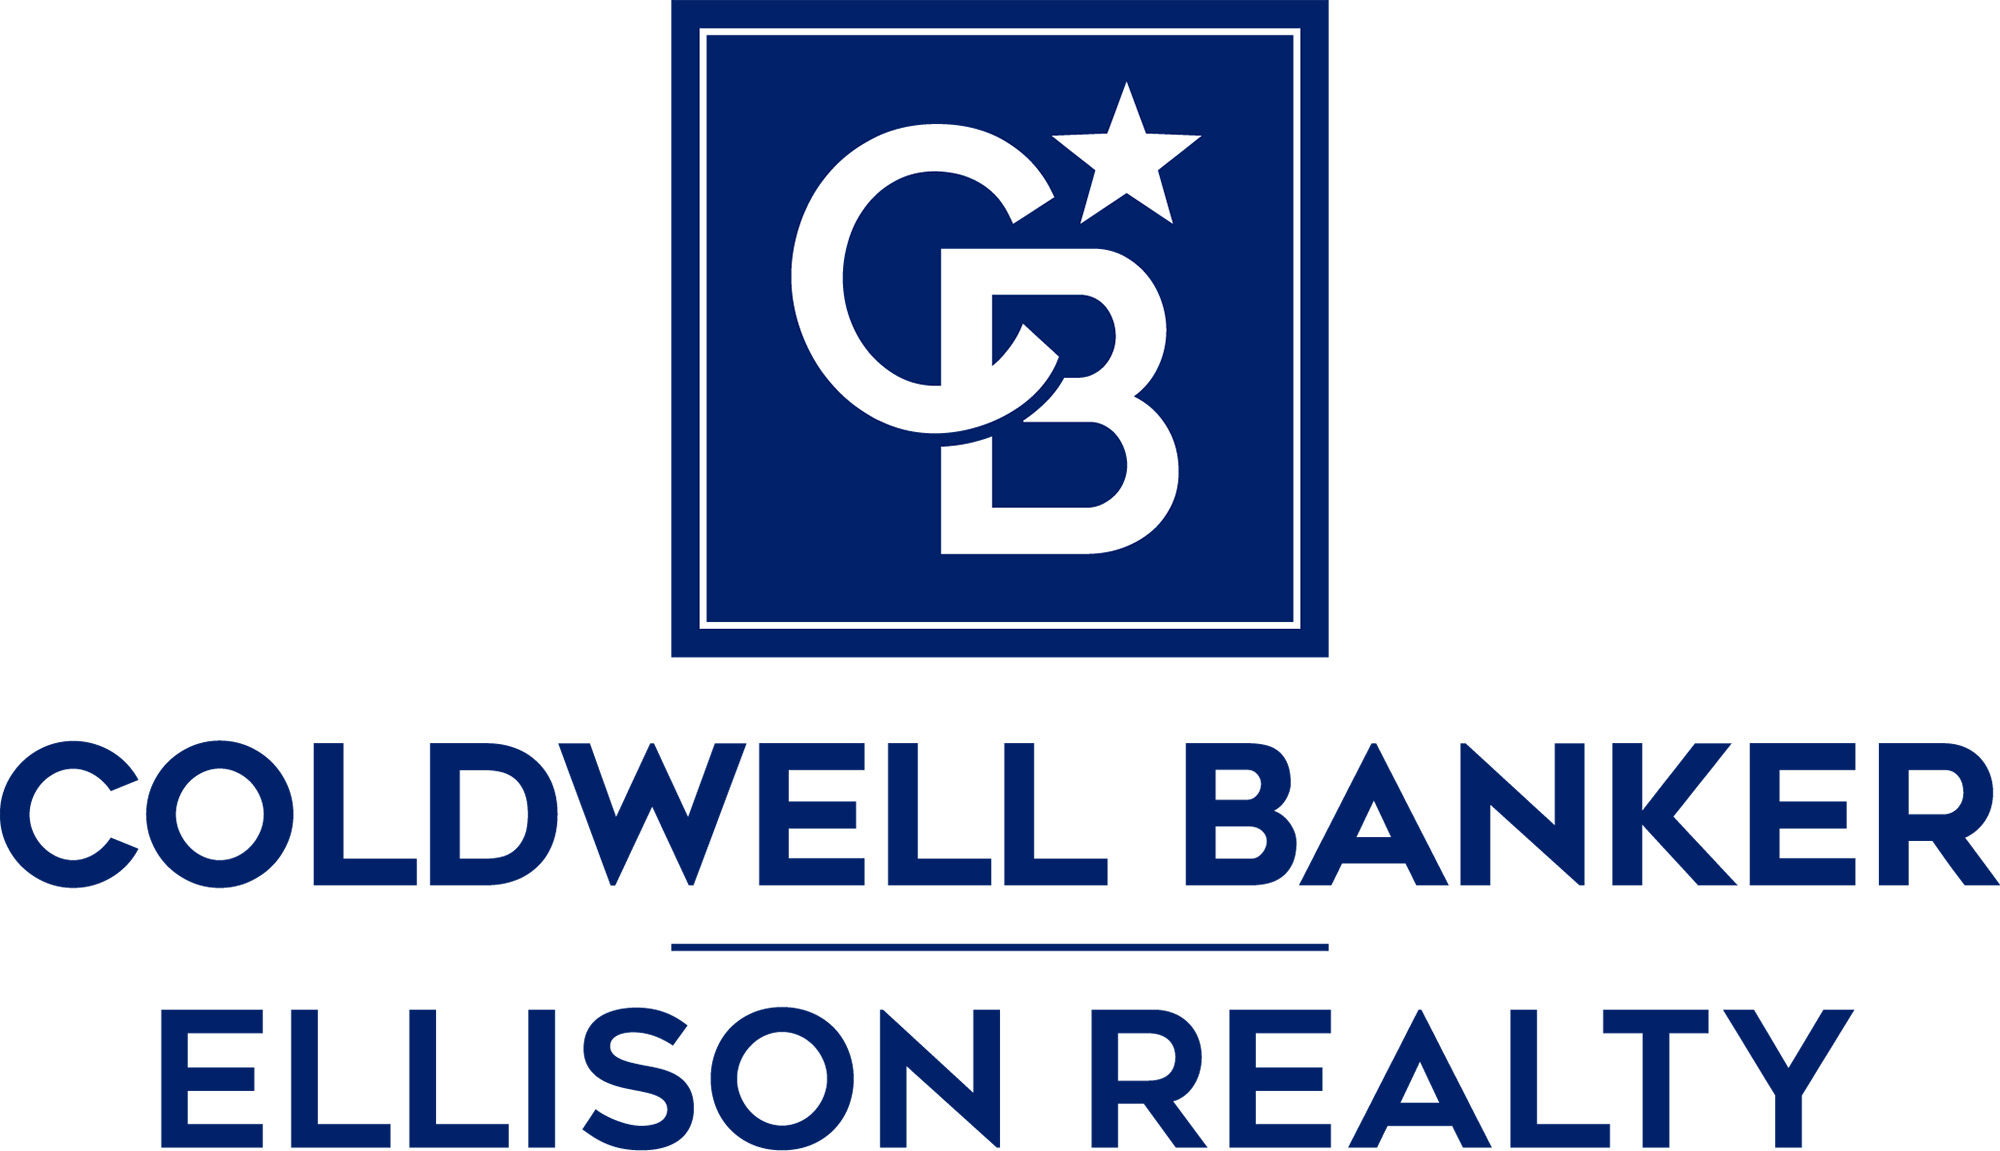 Kimberly Bryant - Coldwell Banker Ellison Realty Logo